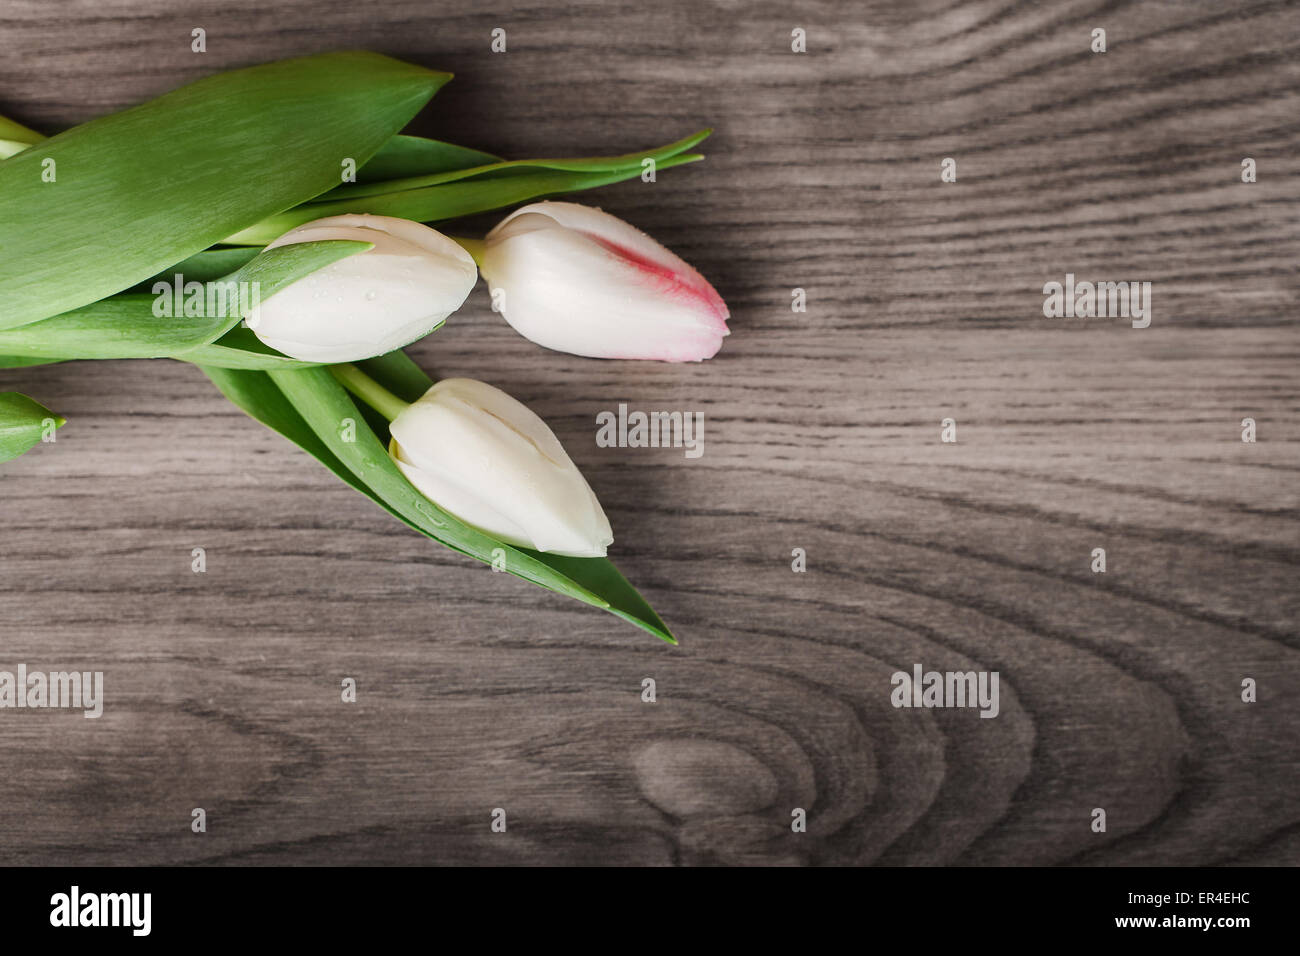 Tulips on a wooden table - Stock Image